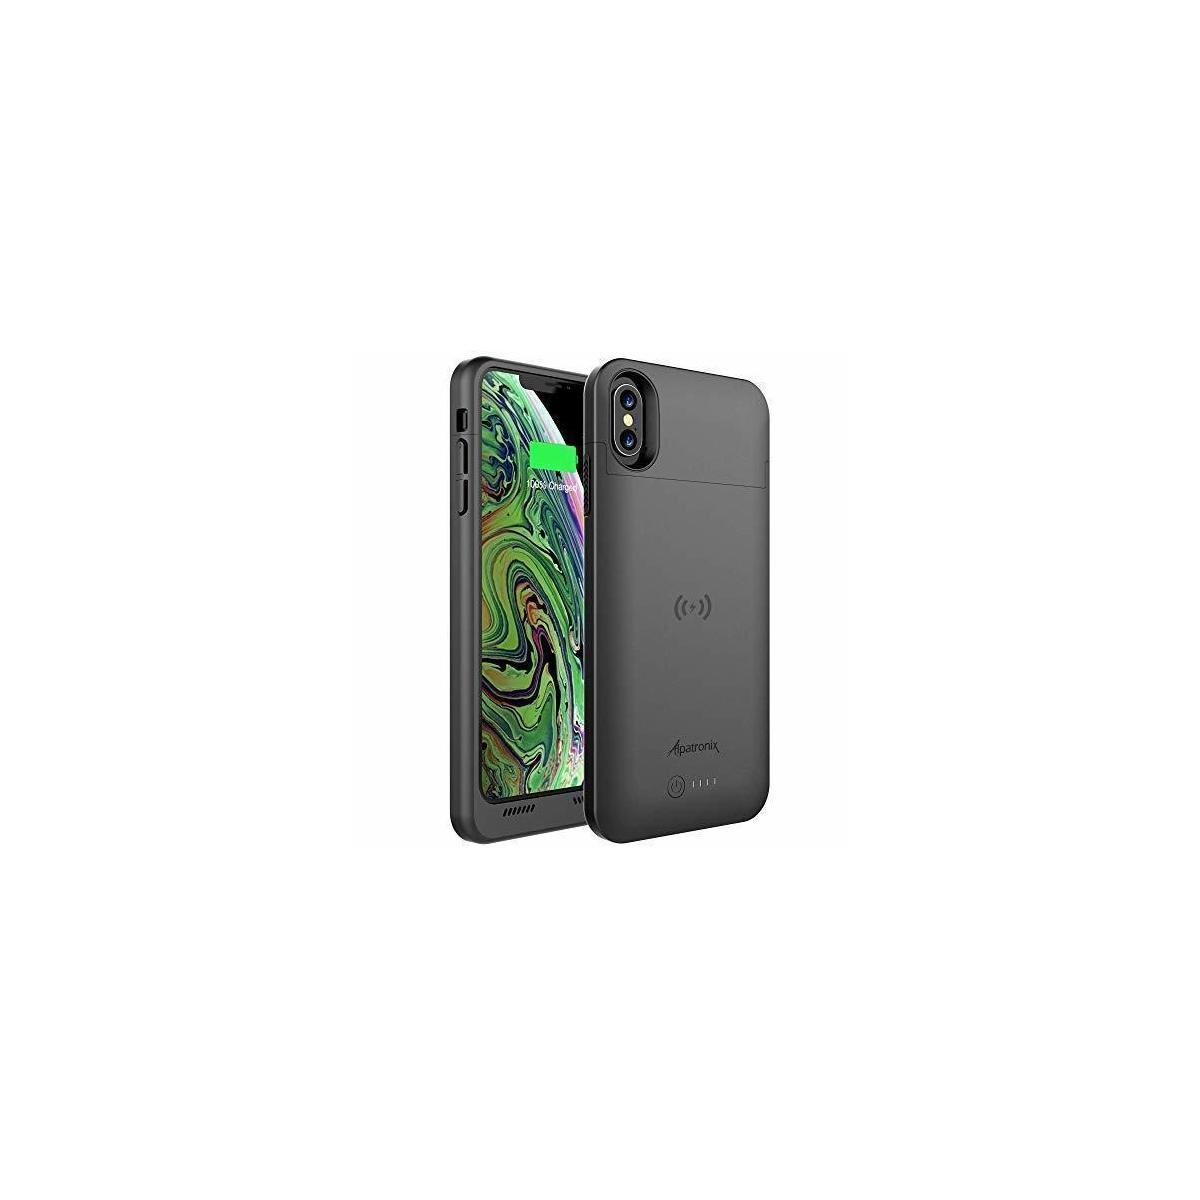 Alpatronix iPhone Xs Max Battery Case, 3500mAh Ultra Slim Portable Protective Extended Charger Cover with Qi Wireless Charging Compatible with iPhone Xs Max (6.5 inch) BXXt Max - (Black)